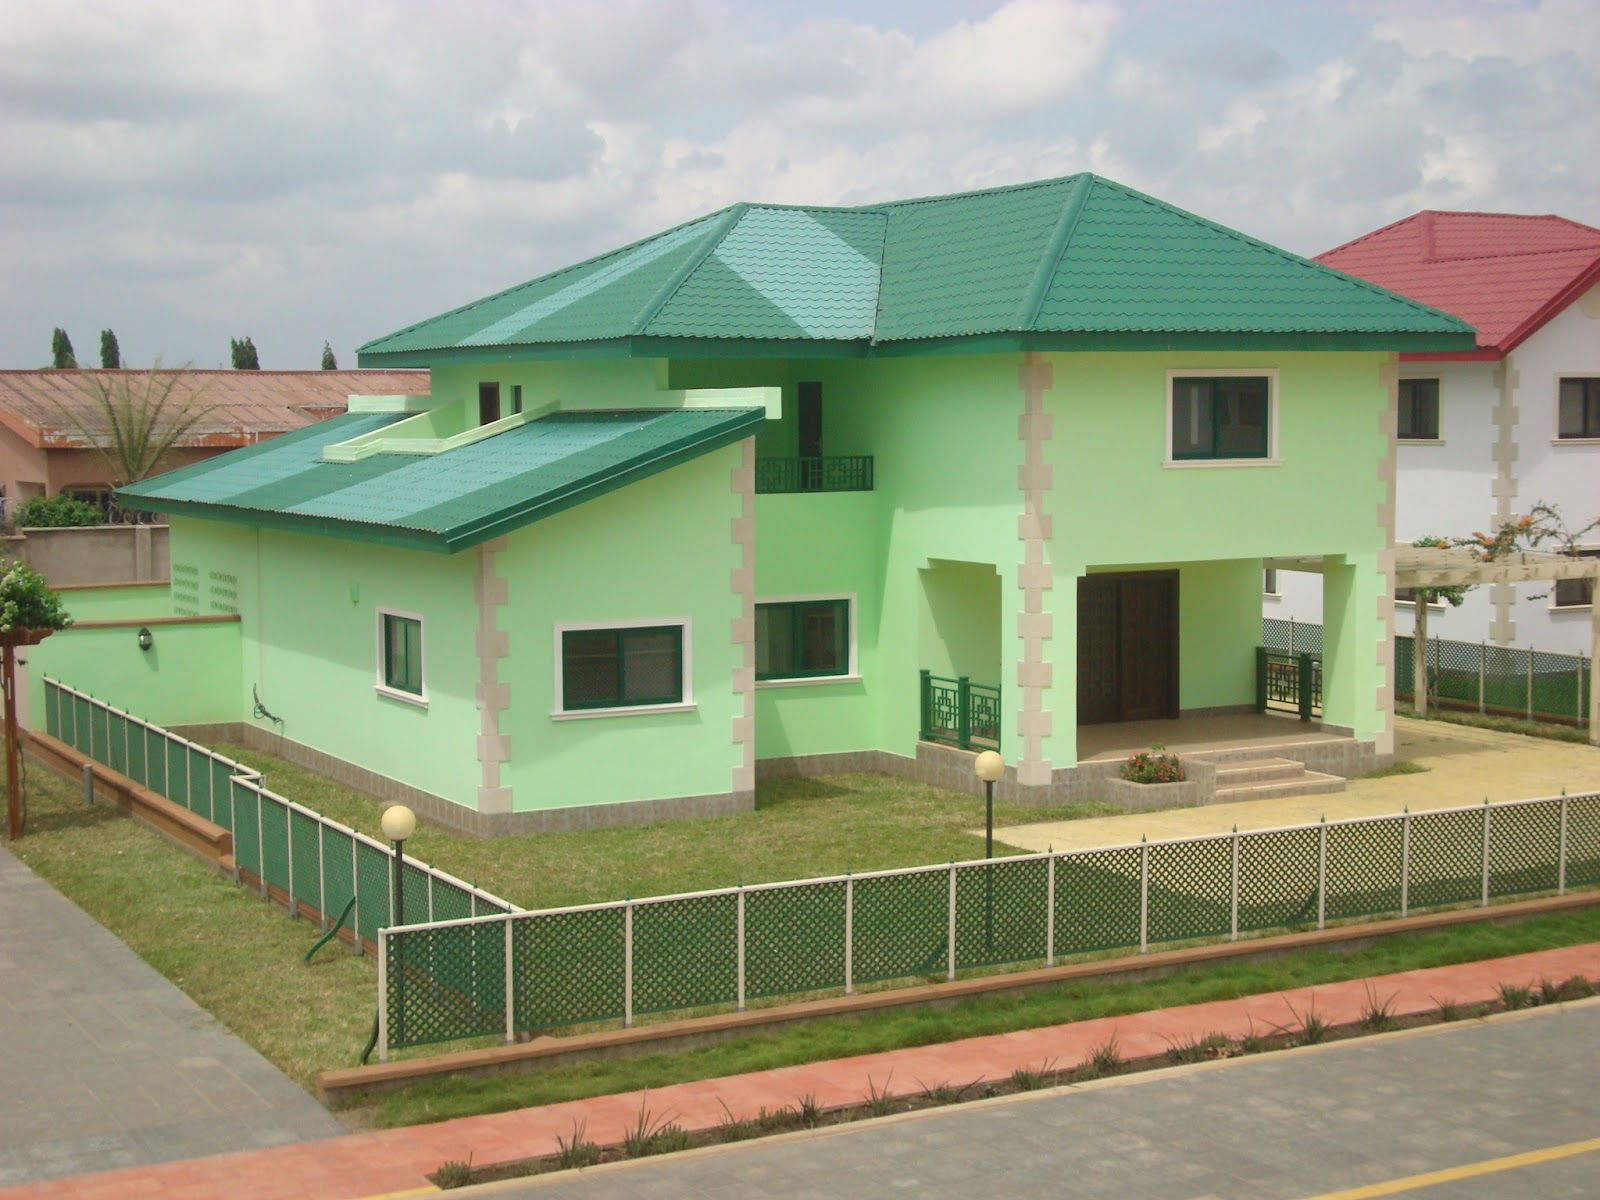 London Vacation Rentals Short Term Apartment In besides House For Rent North Legon Accra furthermore 16127 further House For Sale East Legon Accra Ghana besides 2014 10 01 archive. on ghana accra rental apartments